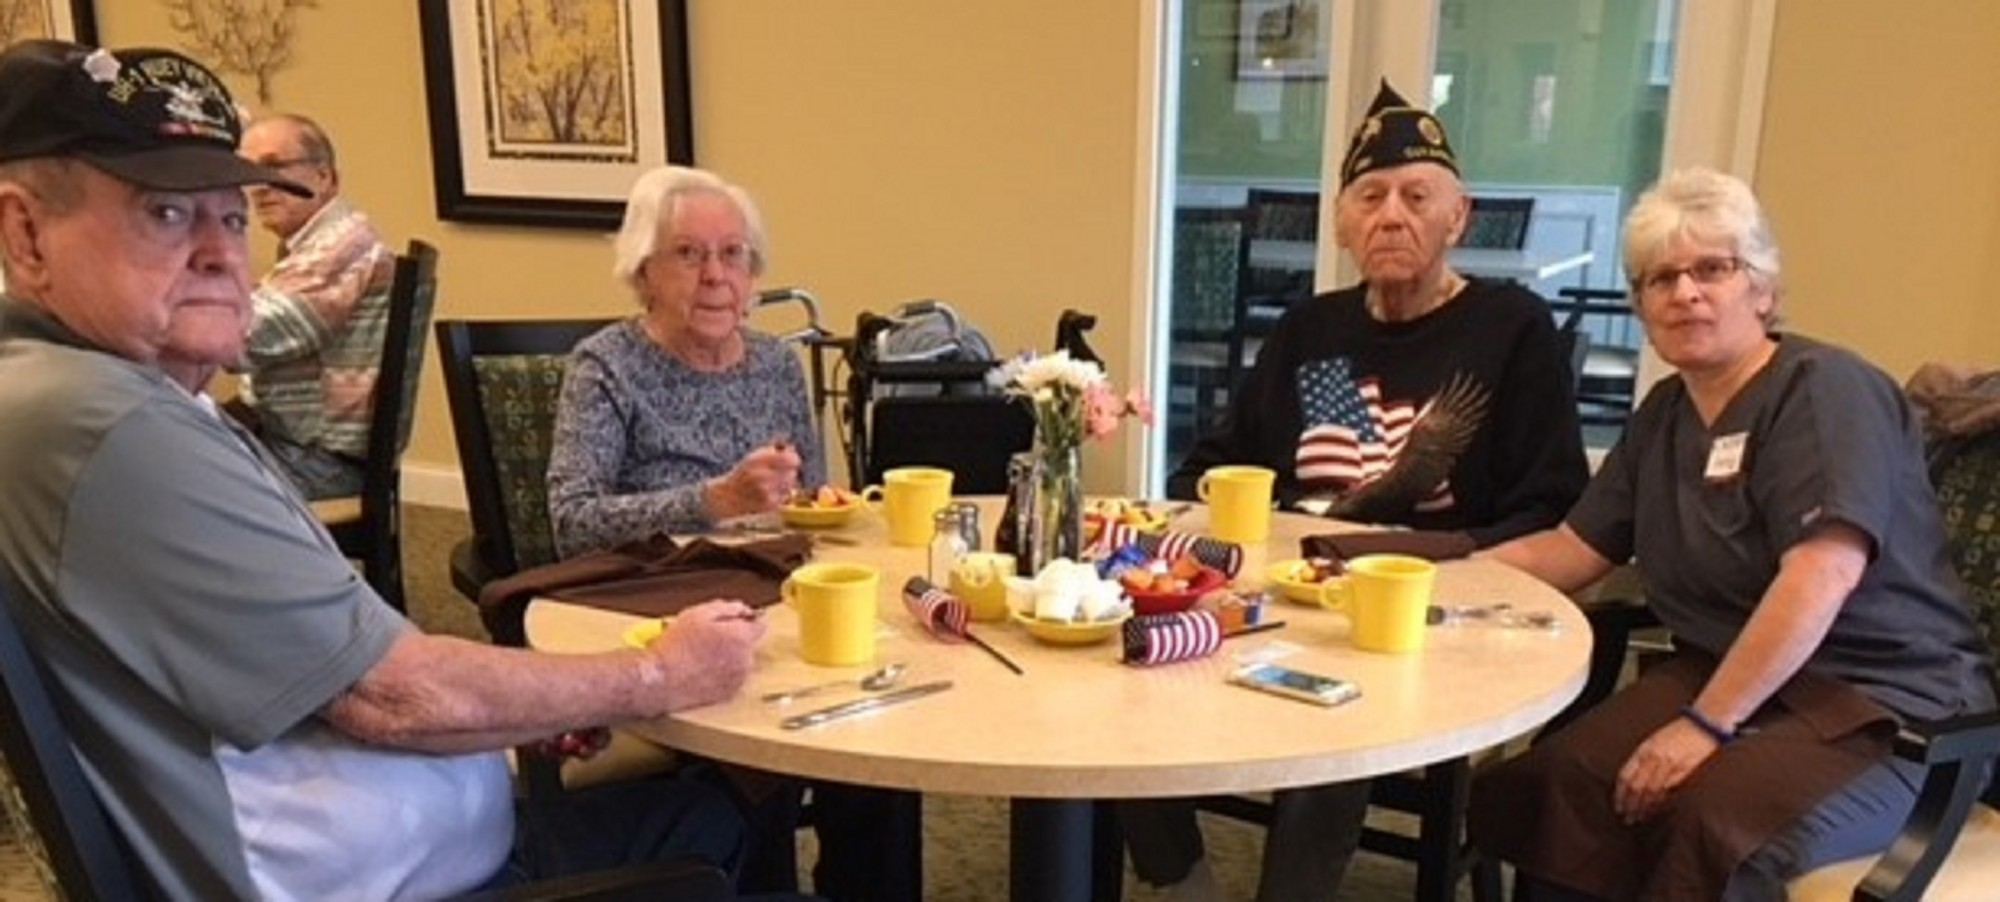 Veteran's Breakfast at Danbury Tallmadge